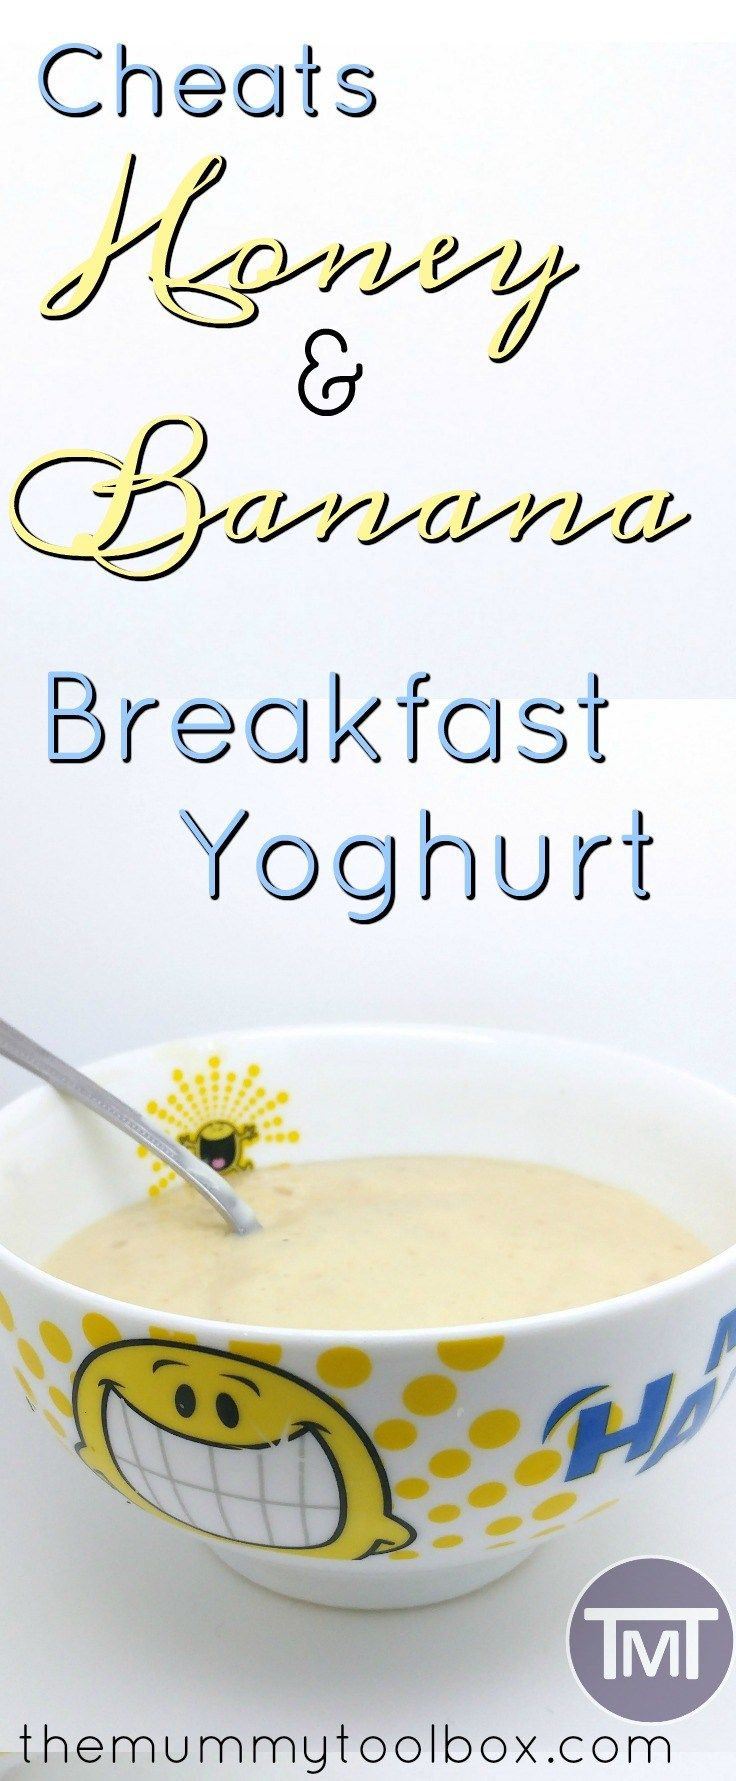 """This """"recipe"""" is delicious, healthy for the kids and is a totally customisable breakfast yoghurt for everyone to enjoy. Plus it's horrendously easy!"""